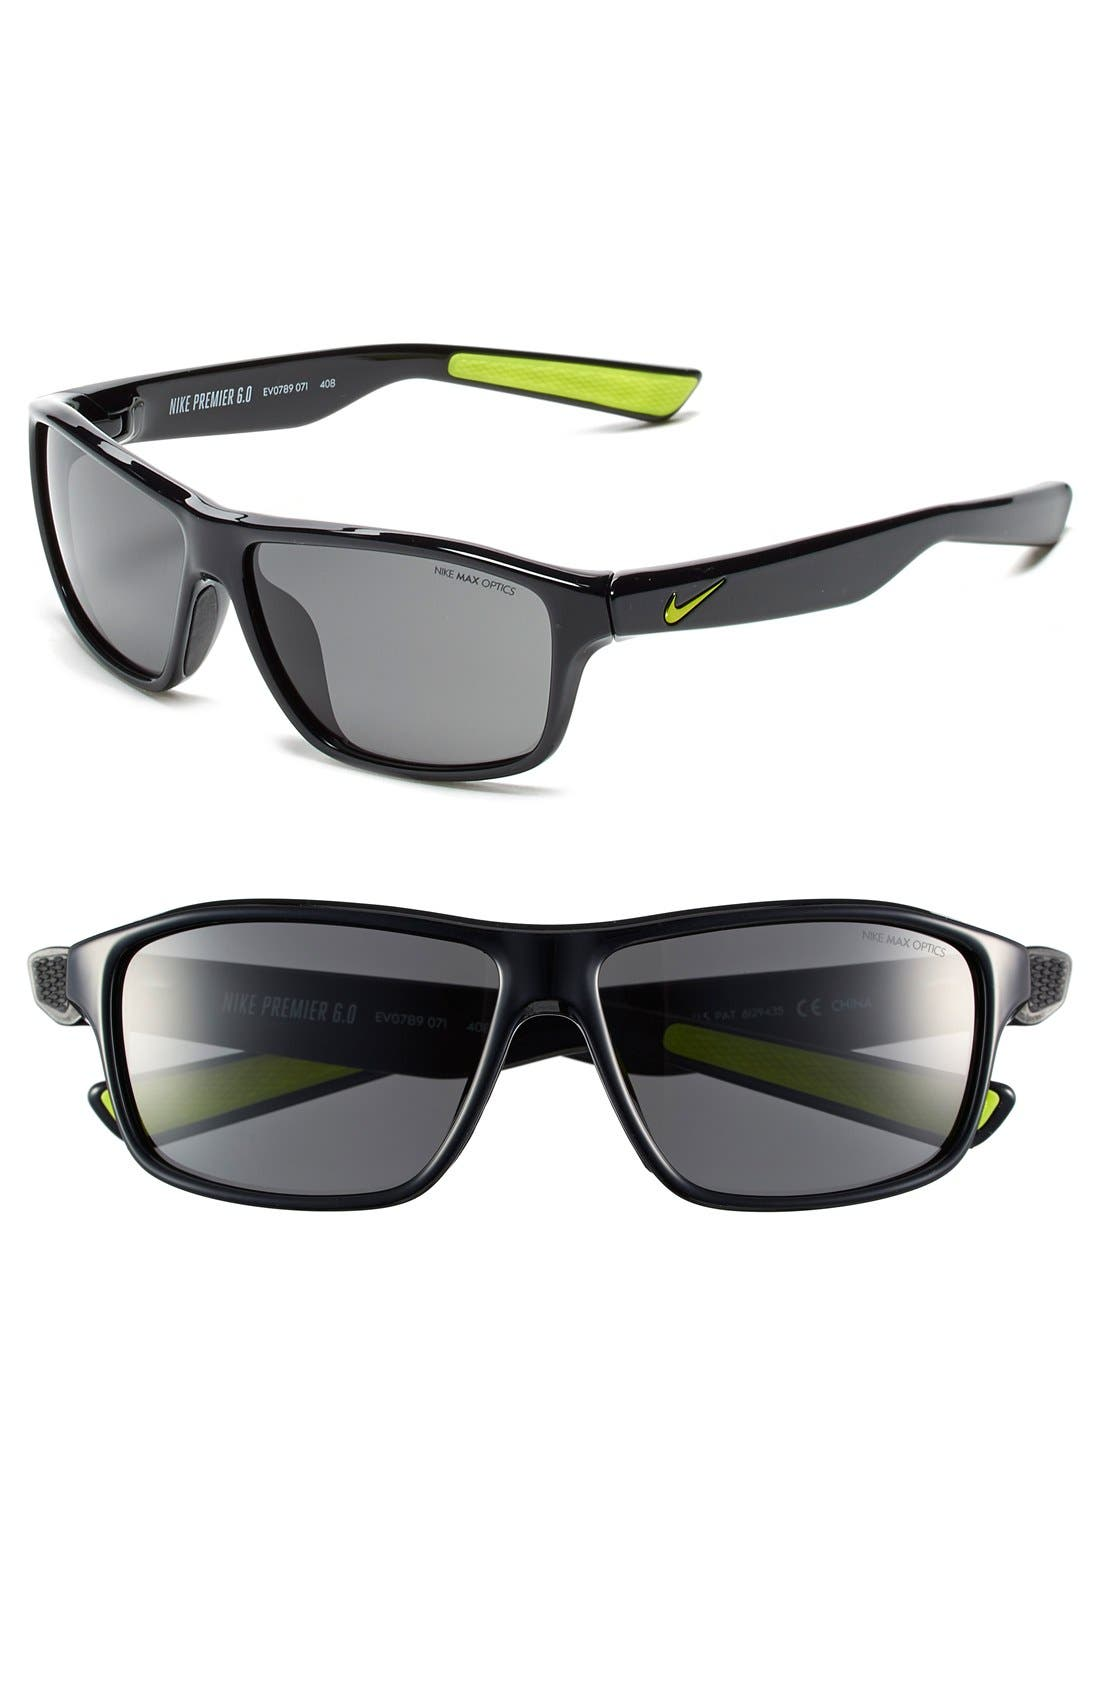 NIKE 59mm 'Premier 6.0' Performance Sunglasses